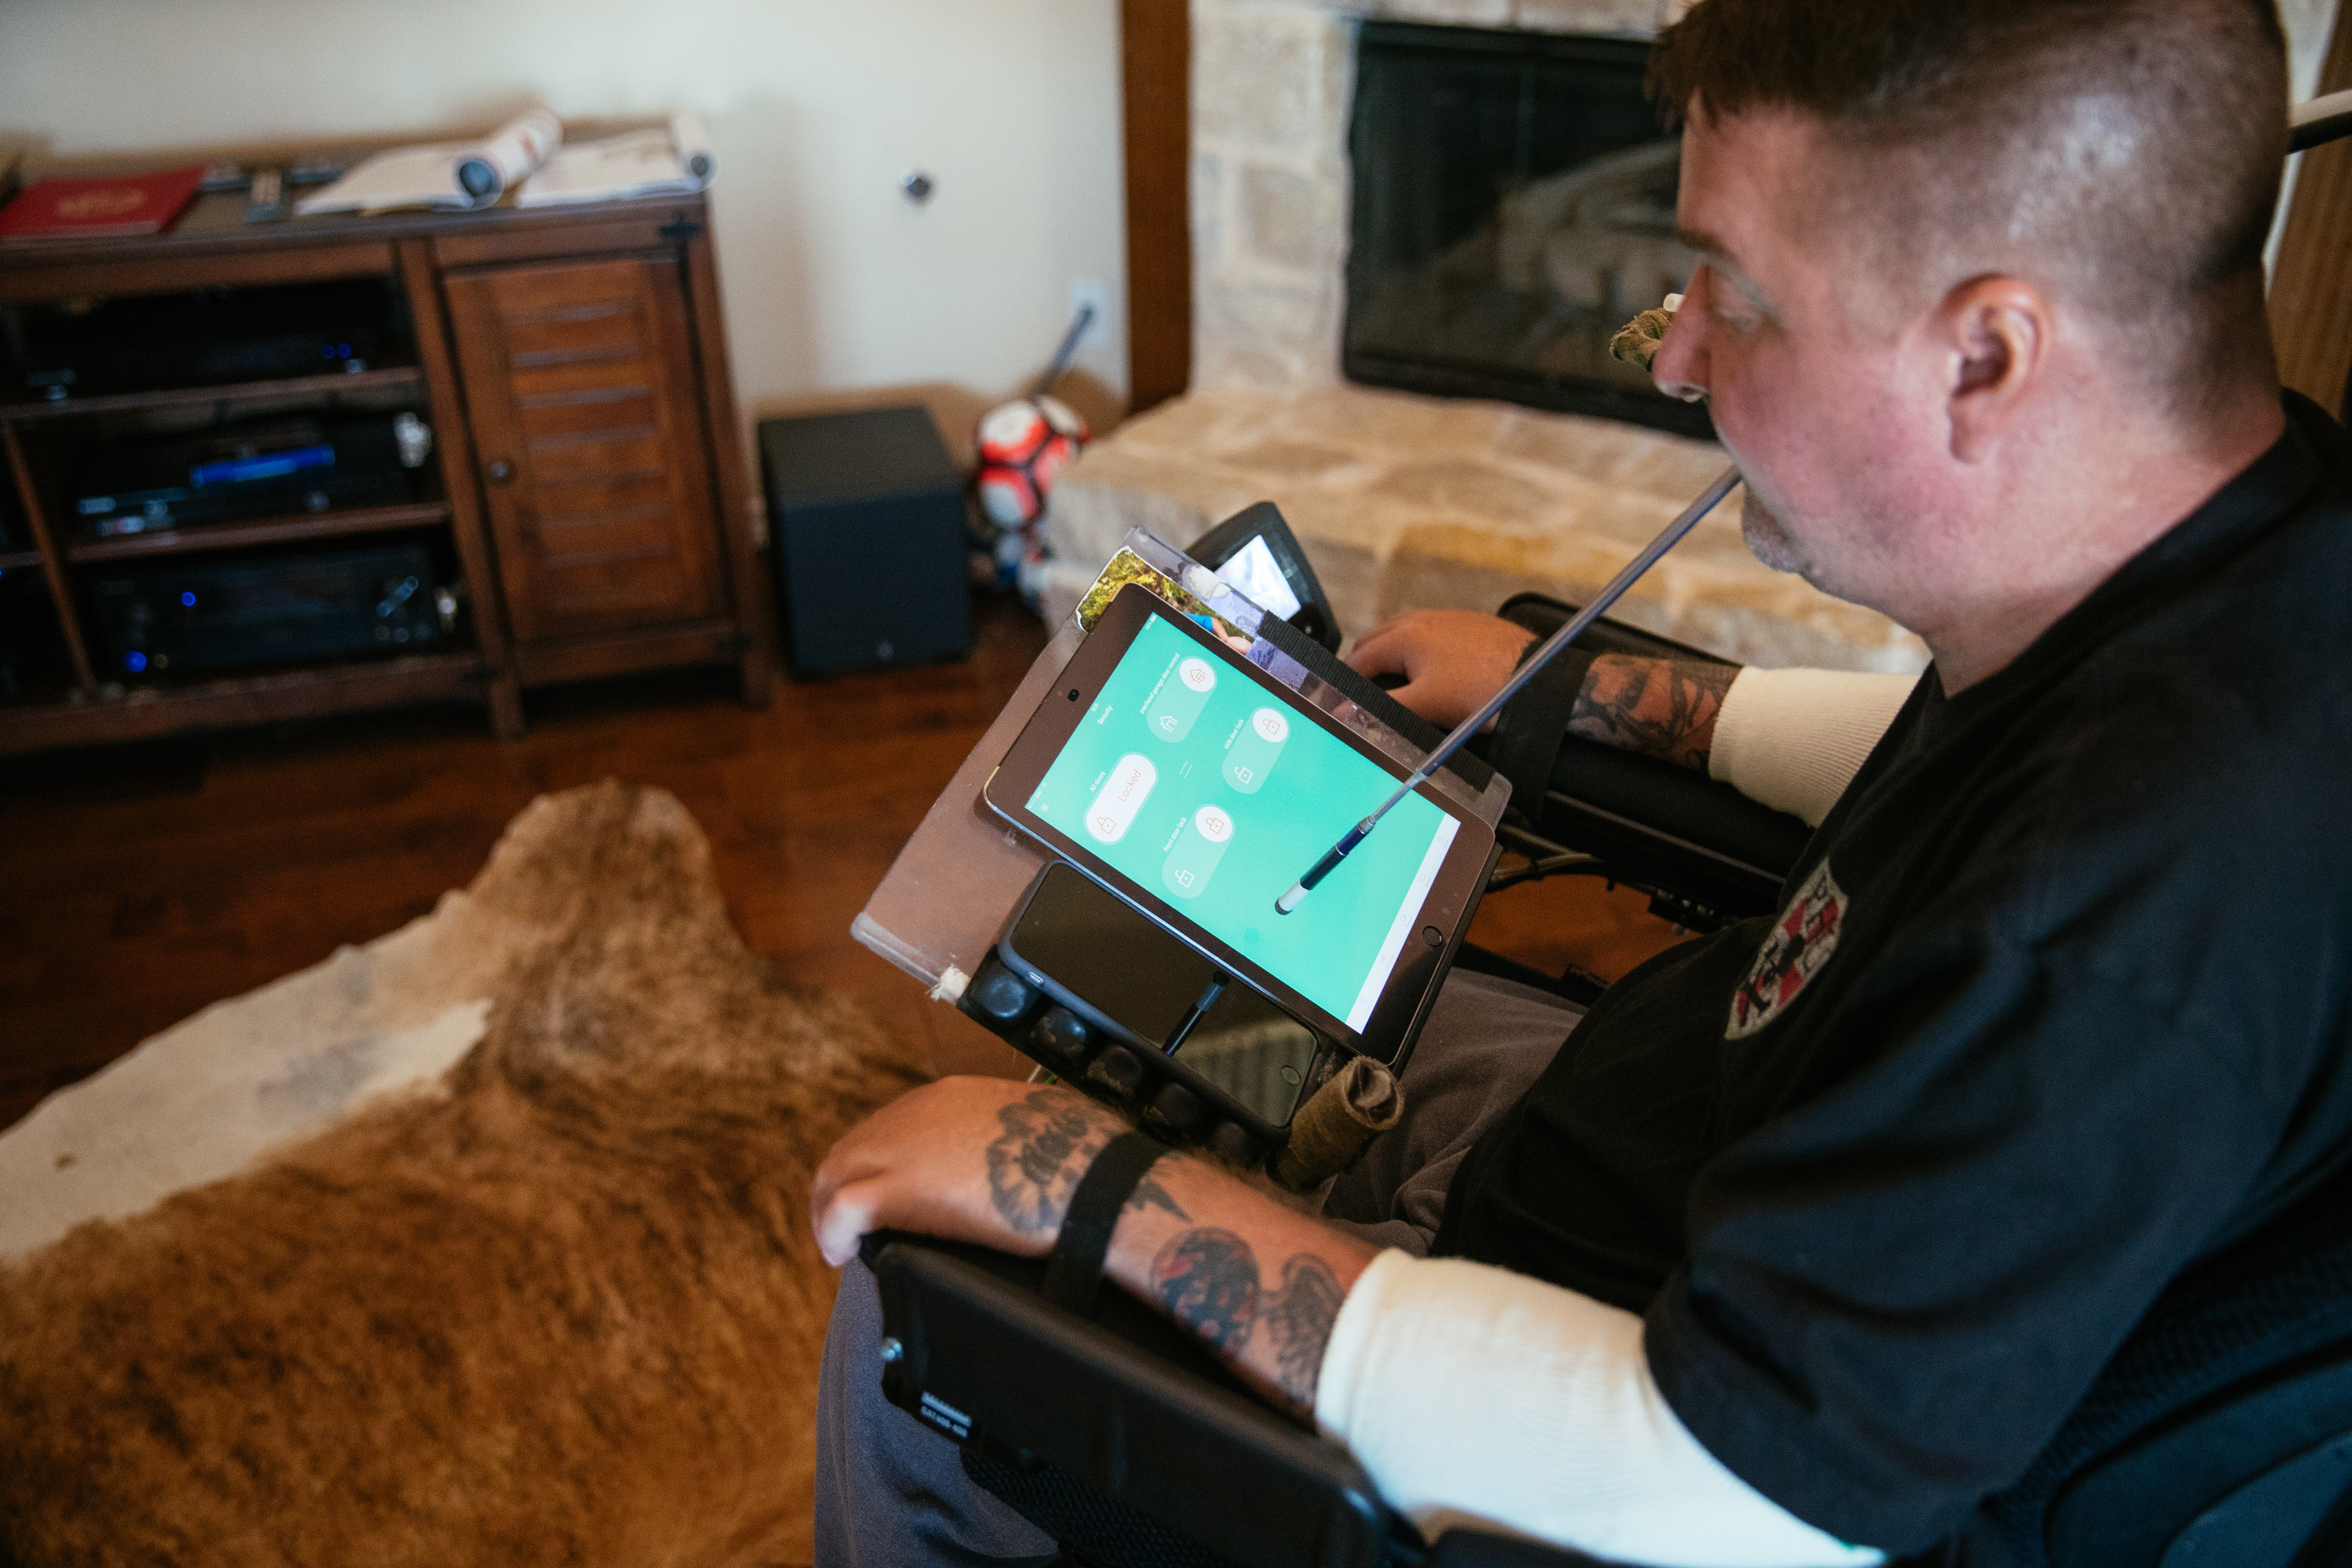 Smart Home Technology Offers Disabled Veterans Greater